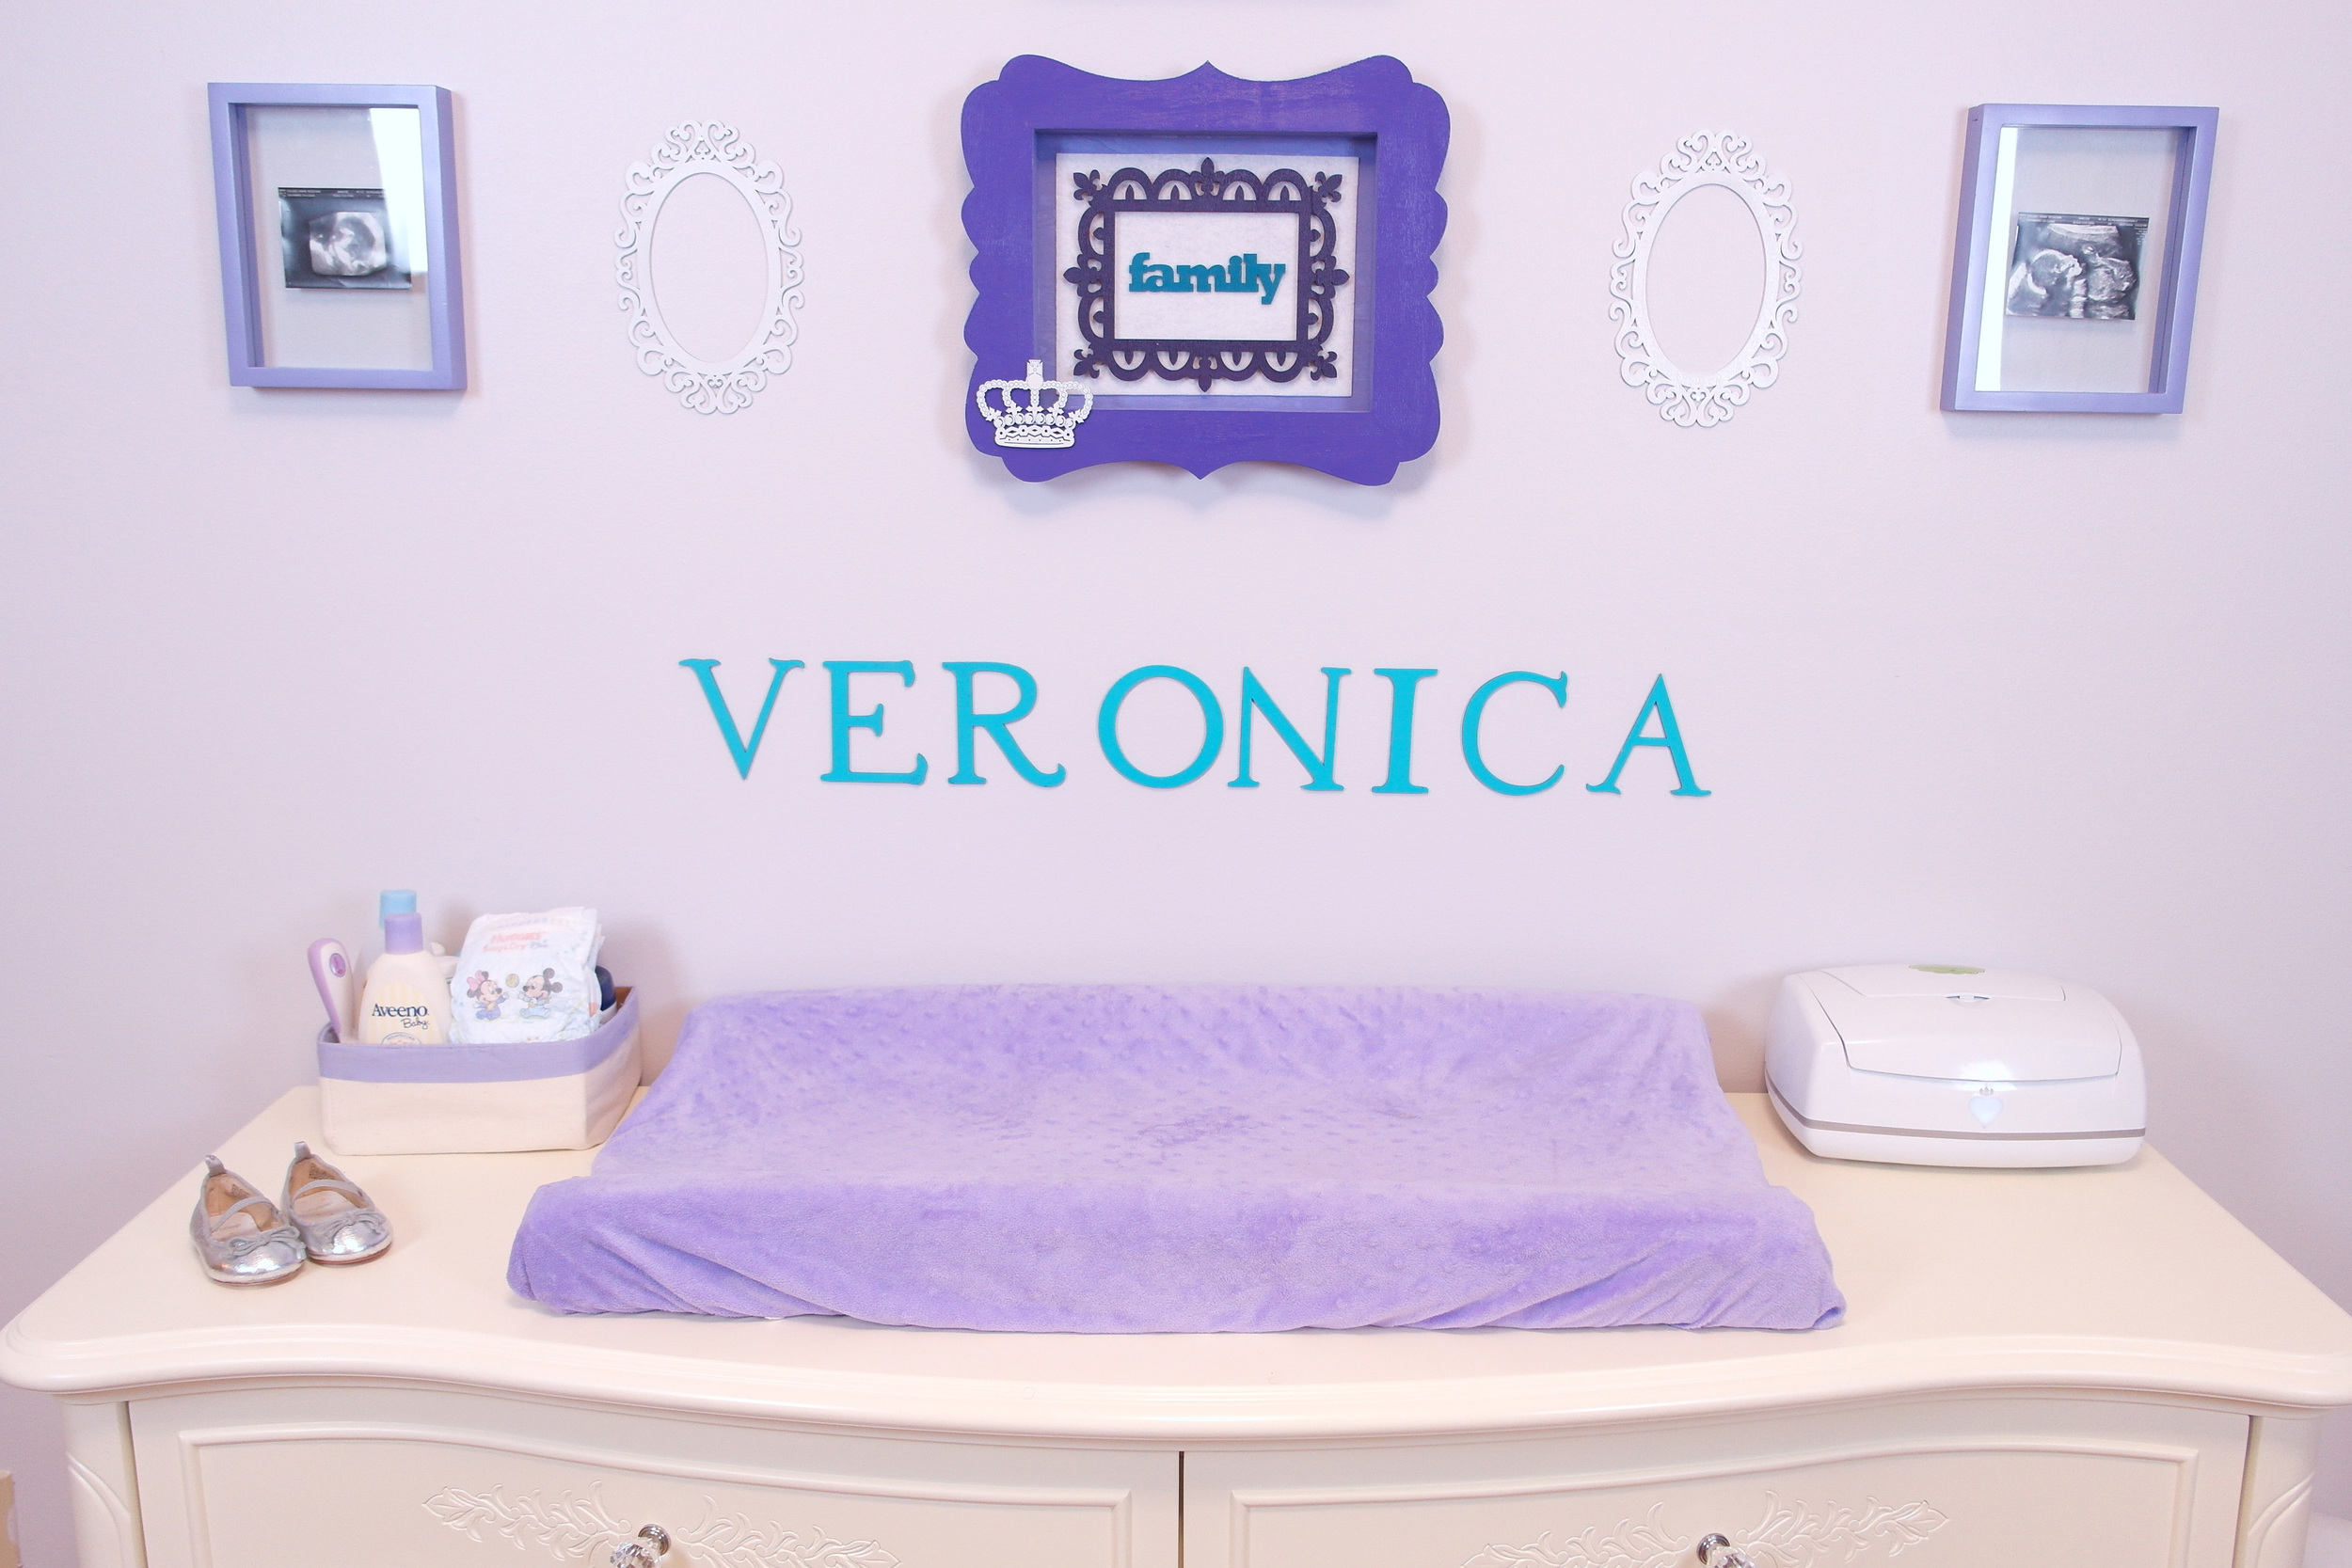 Amelias-Decorating-and-Design-New-Jersey-Interior-Design-Baby-Veroncia-Nursery-Design-changing-table-use-a-dresser.jpg